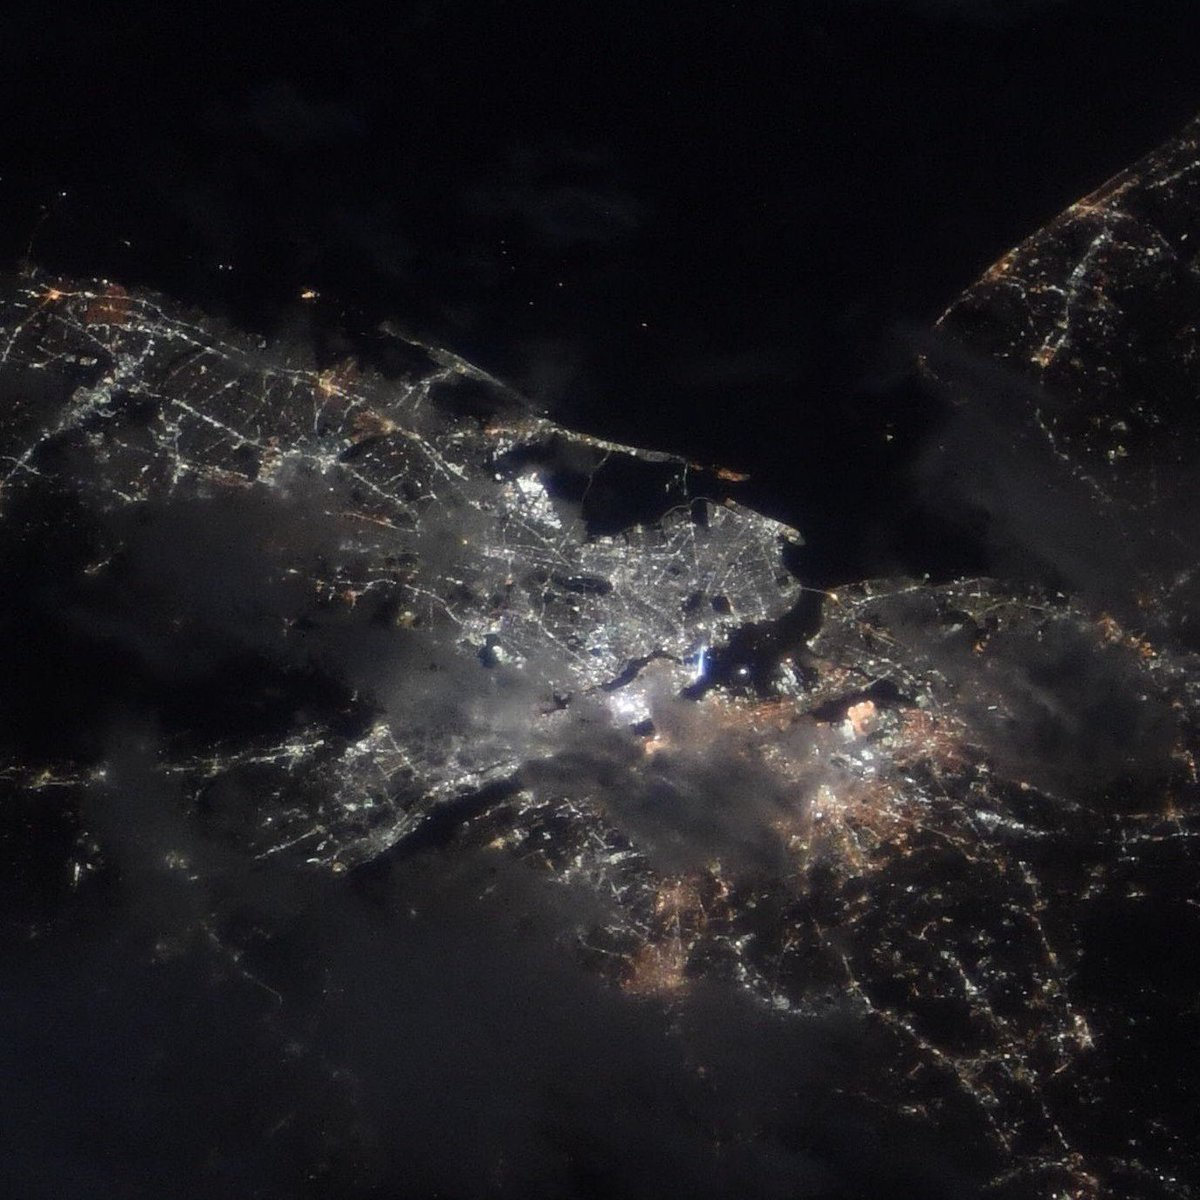 The Tribute in Light shines even into space. The crew of the @Space_Station stands with you honoring those who were affected and those whose unbreakable spirit continues to shine the light. #TributeInLight #NeverForget<br>http://pic.twitter.com/dpeZEXBtv2